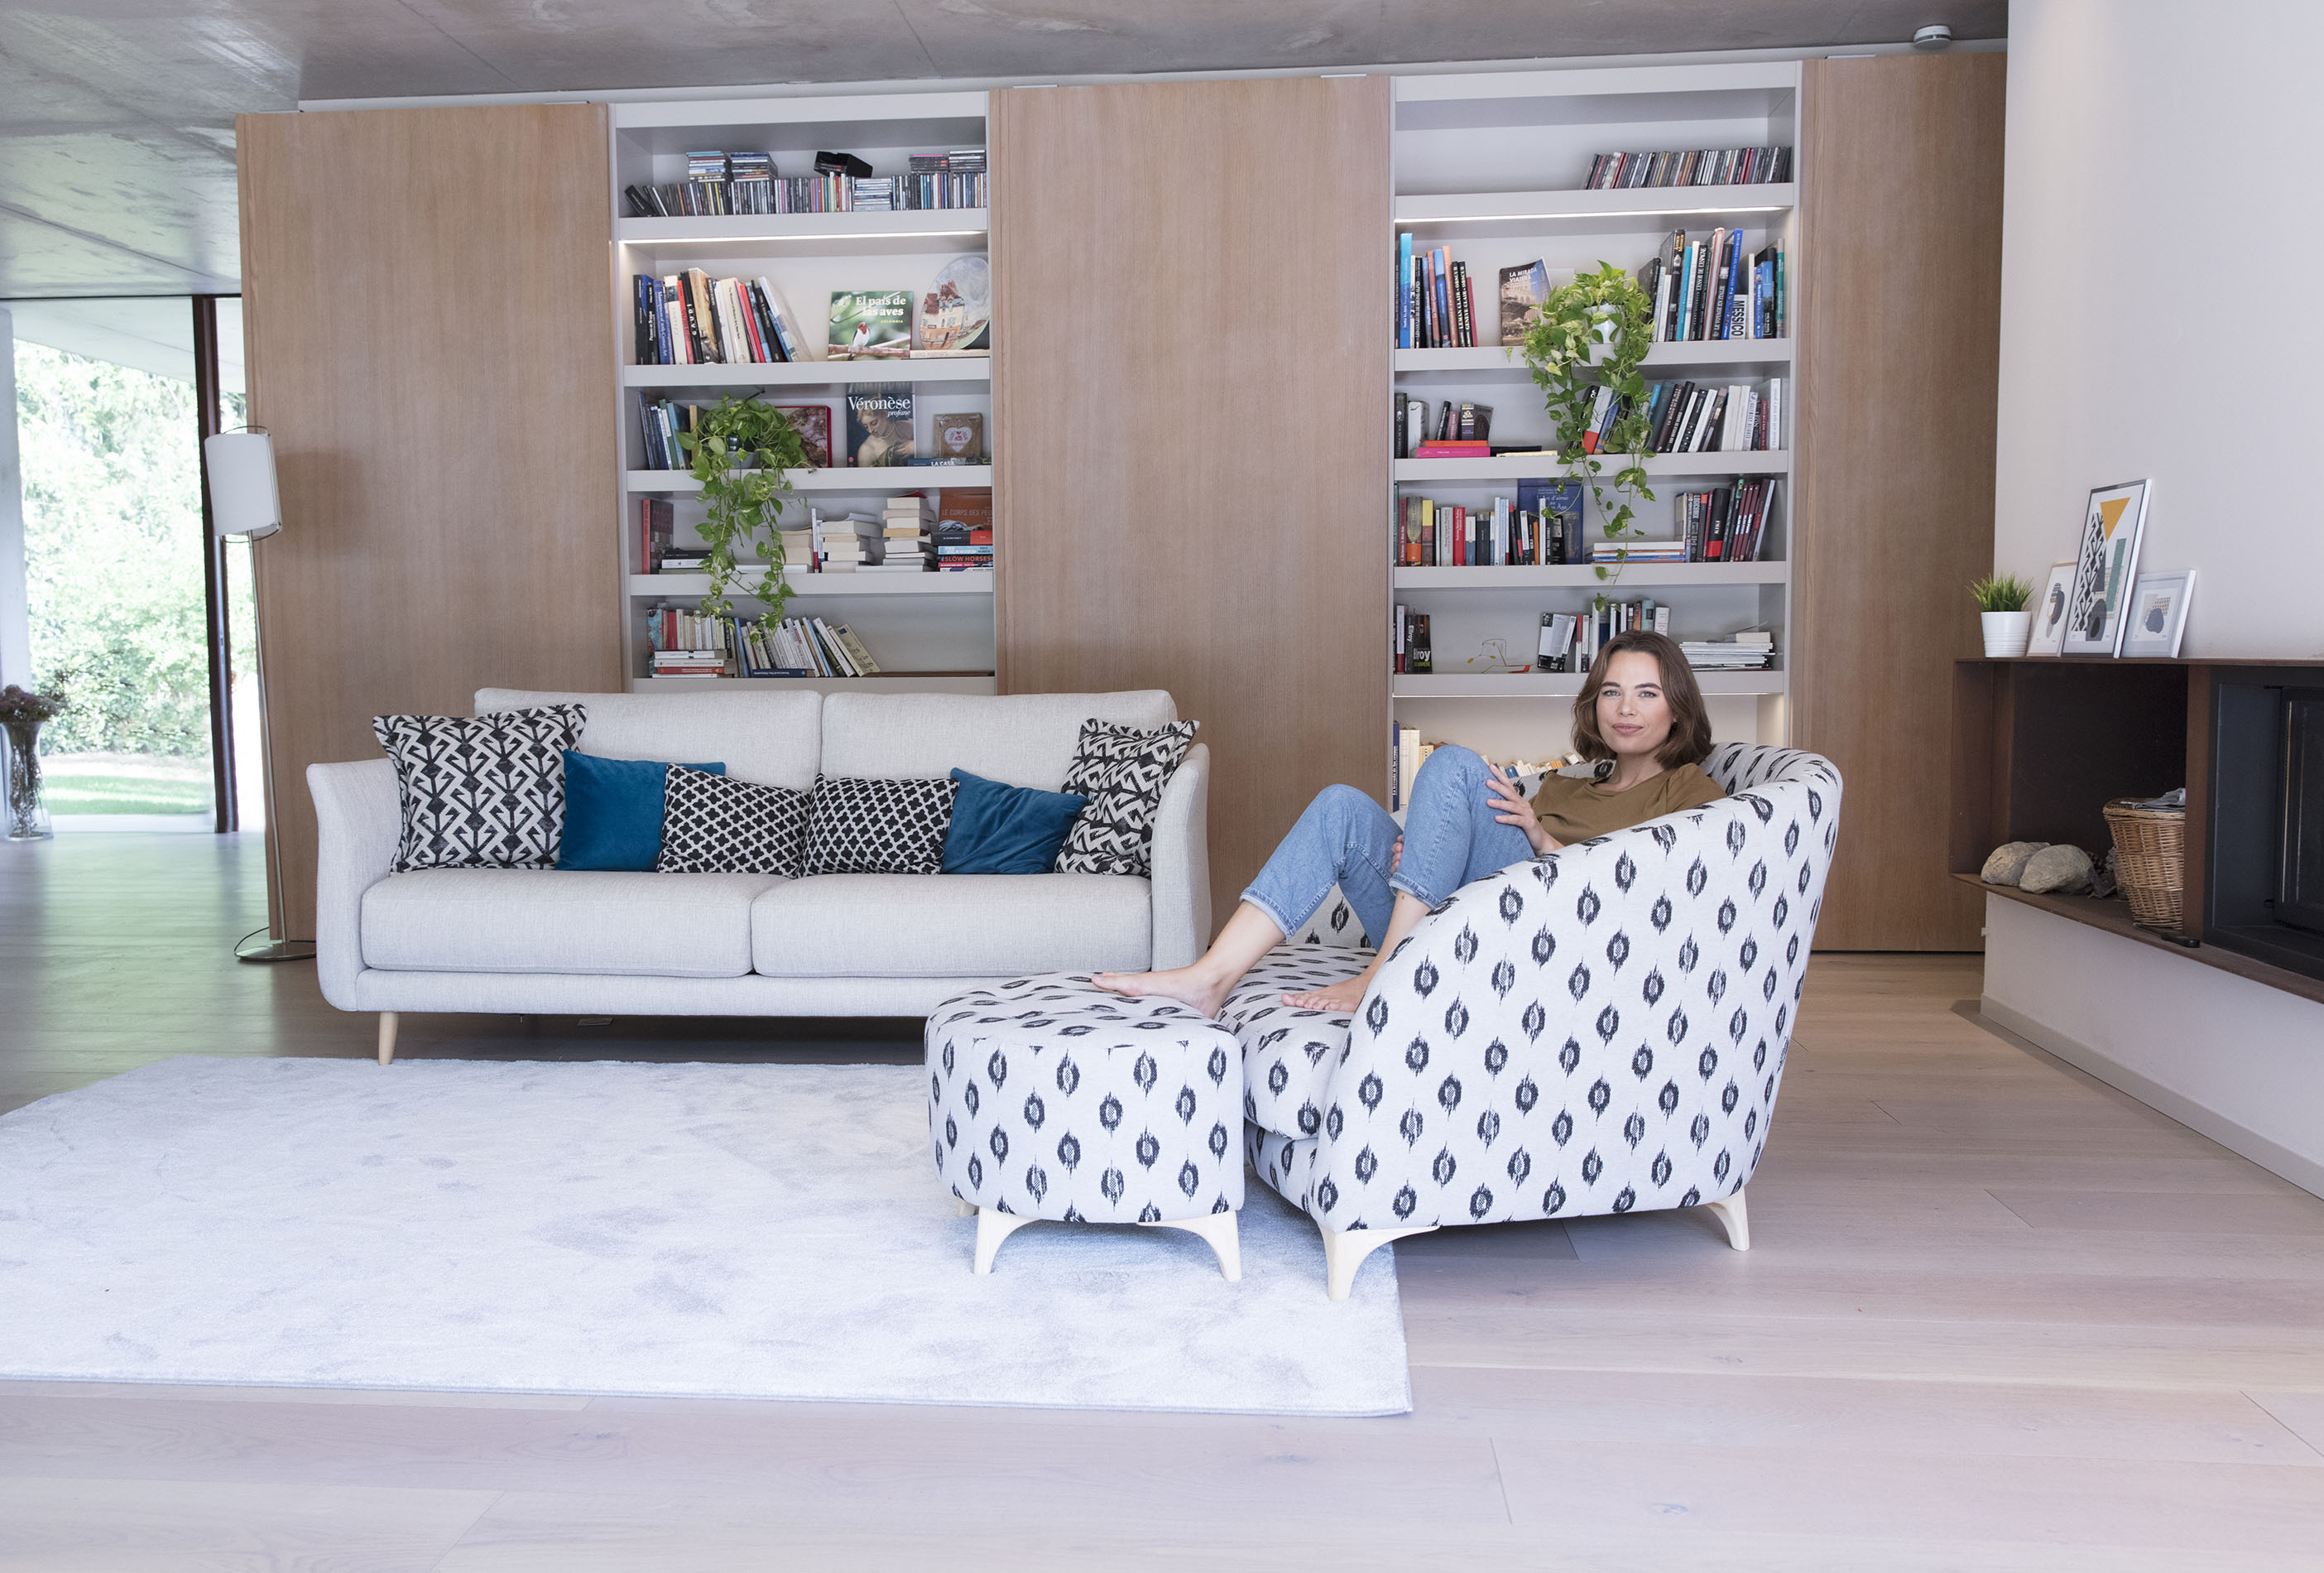 2 seater fama sofa with high wooden legs grey fabric matched with patterned sofa with its footstool ,